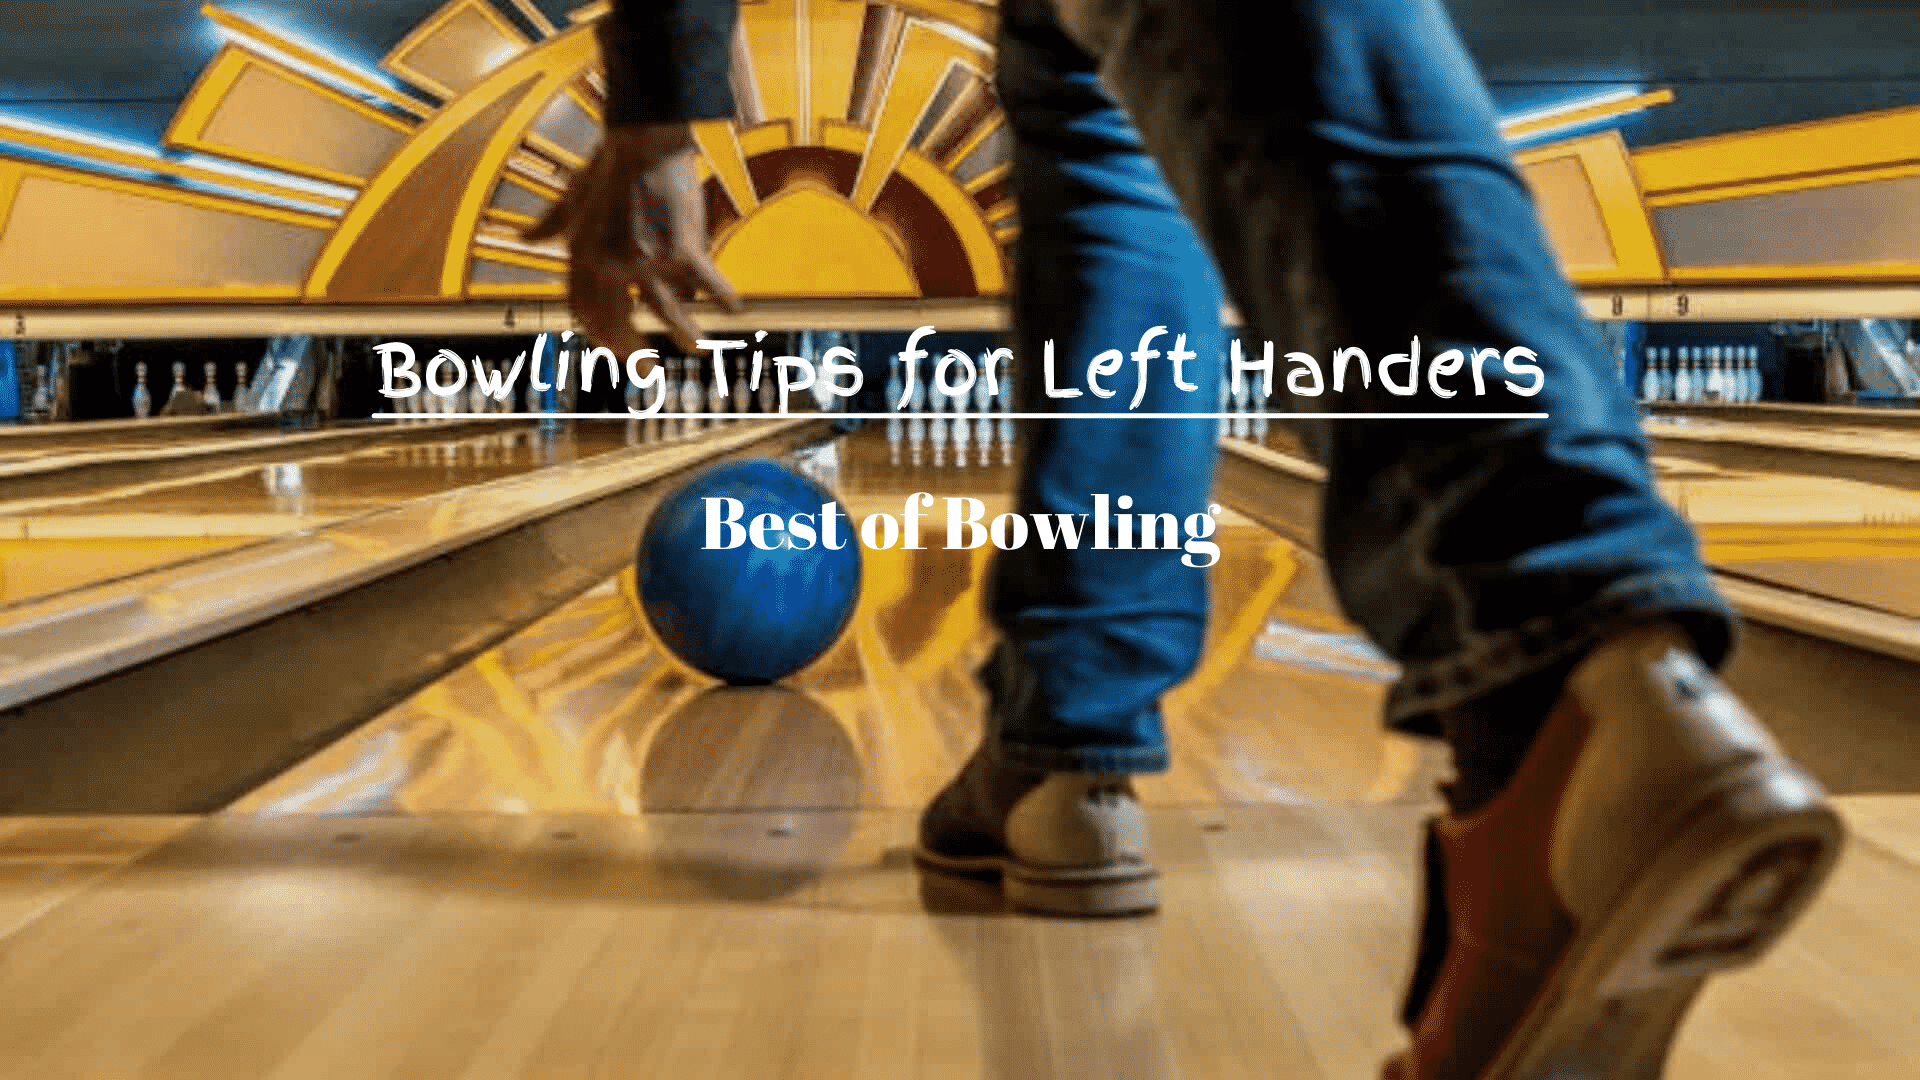 Bowling Tips for Left-Handers